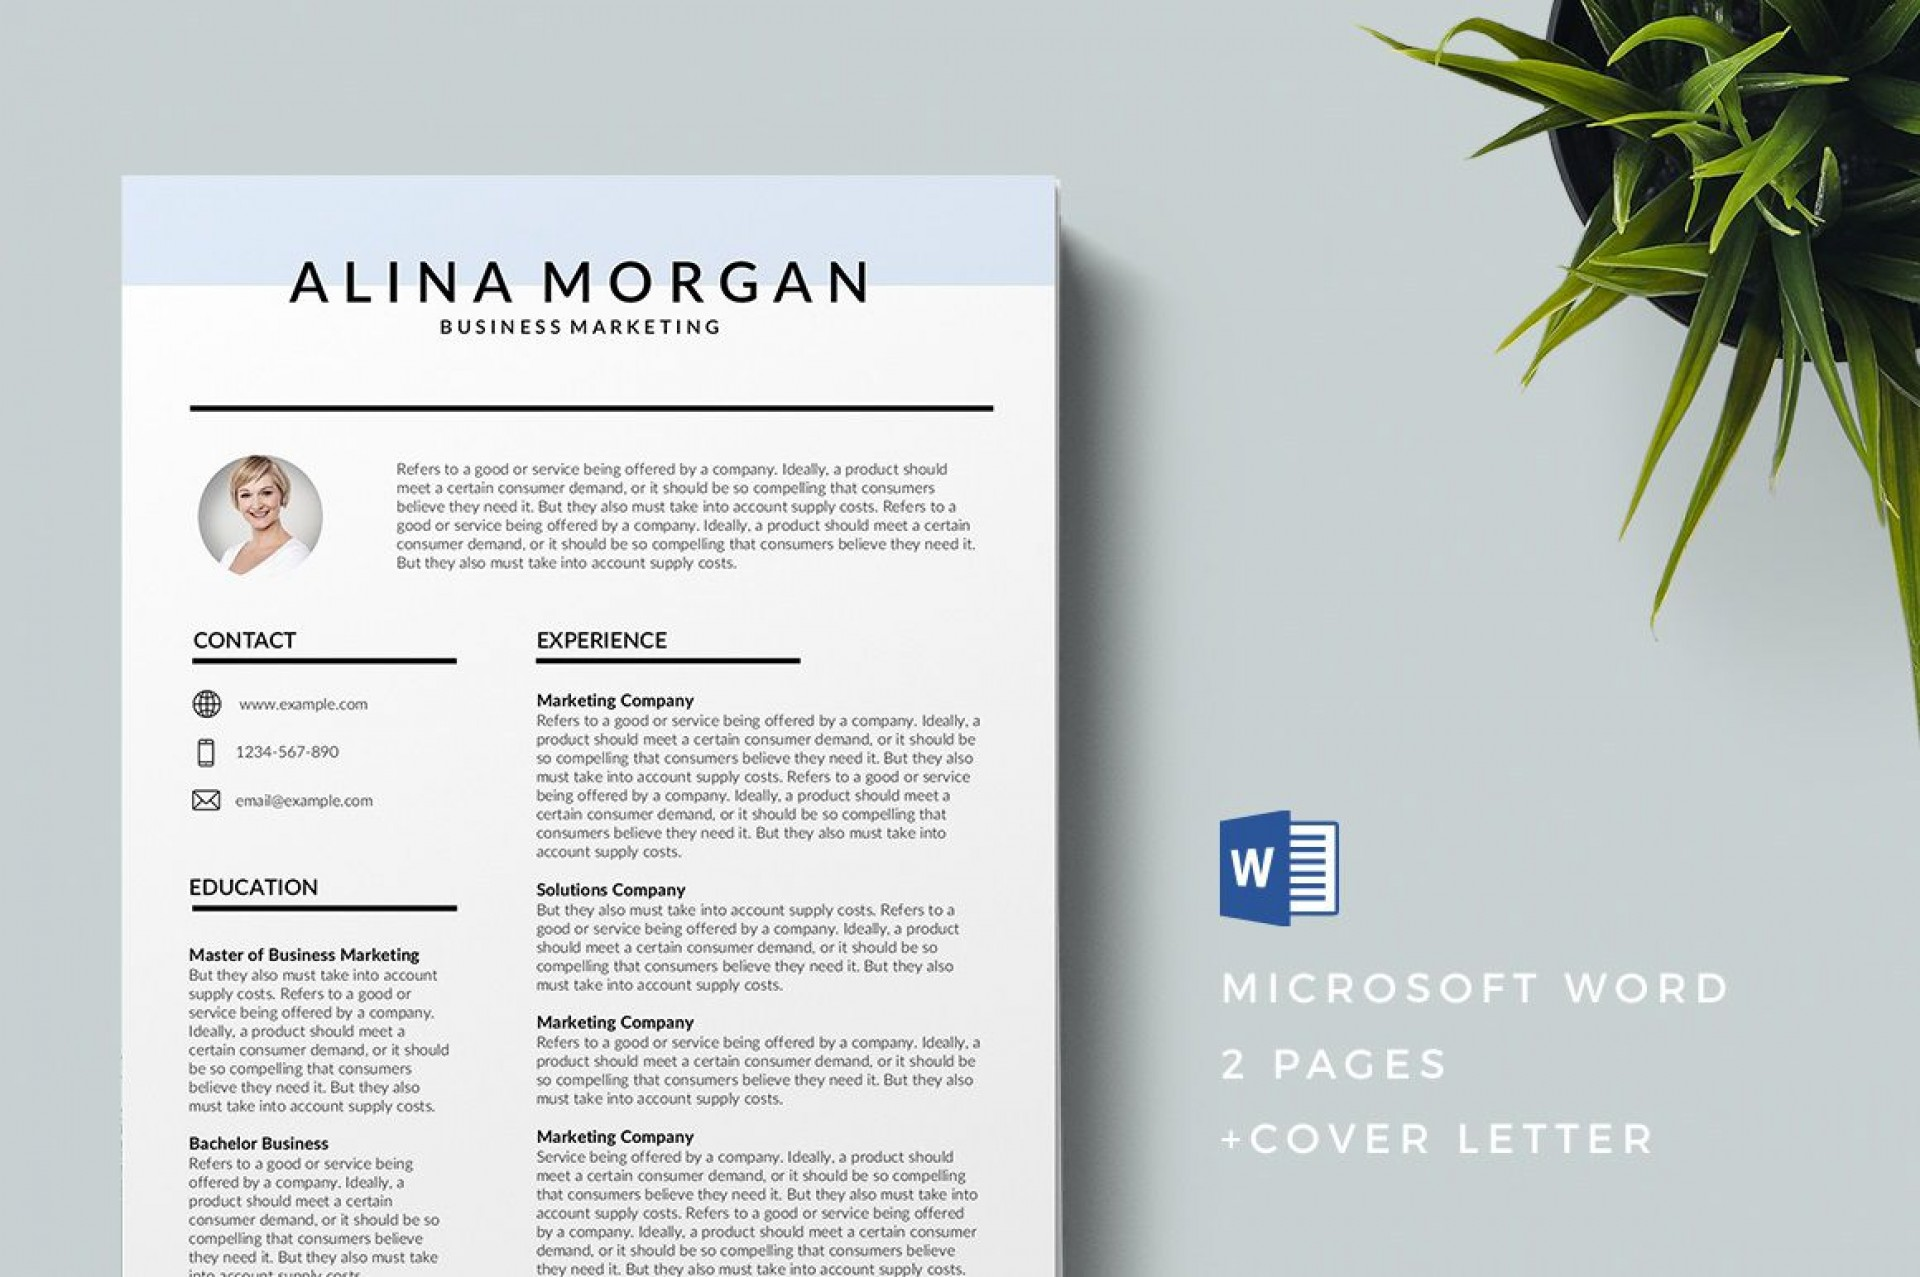 006 Remarkable Professional Cv Template 2019 Free Download High Def 1920